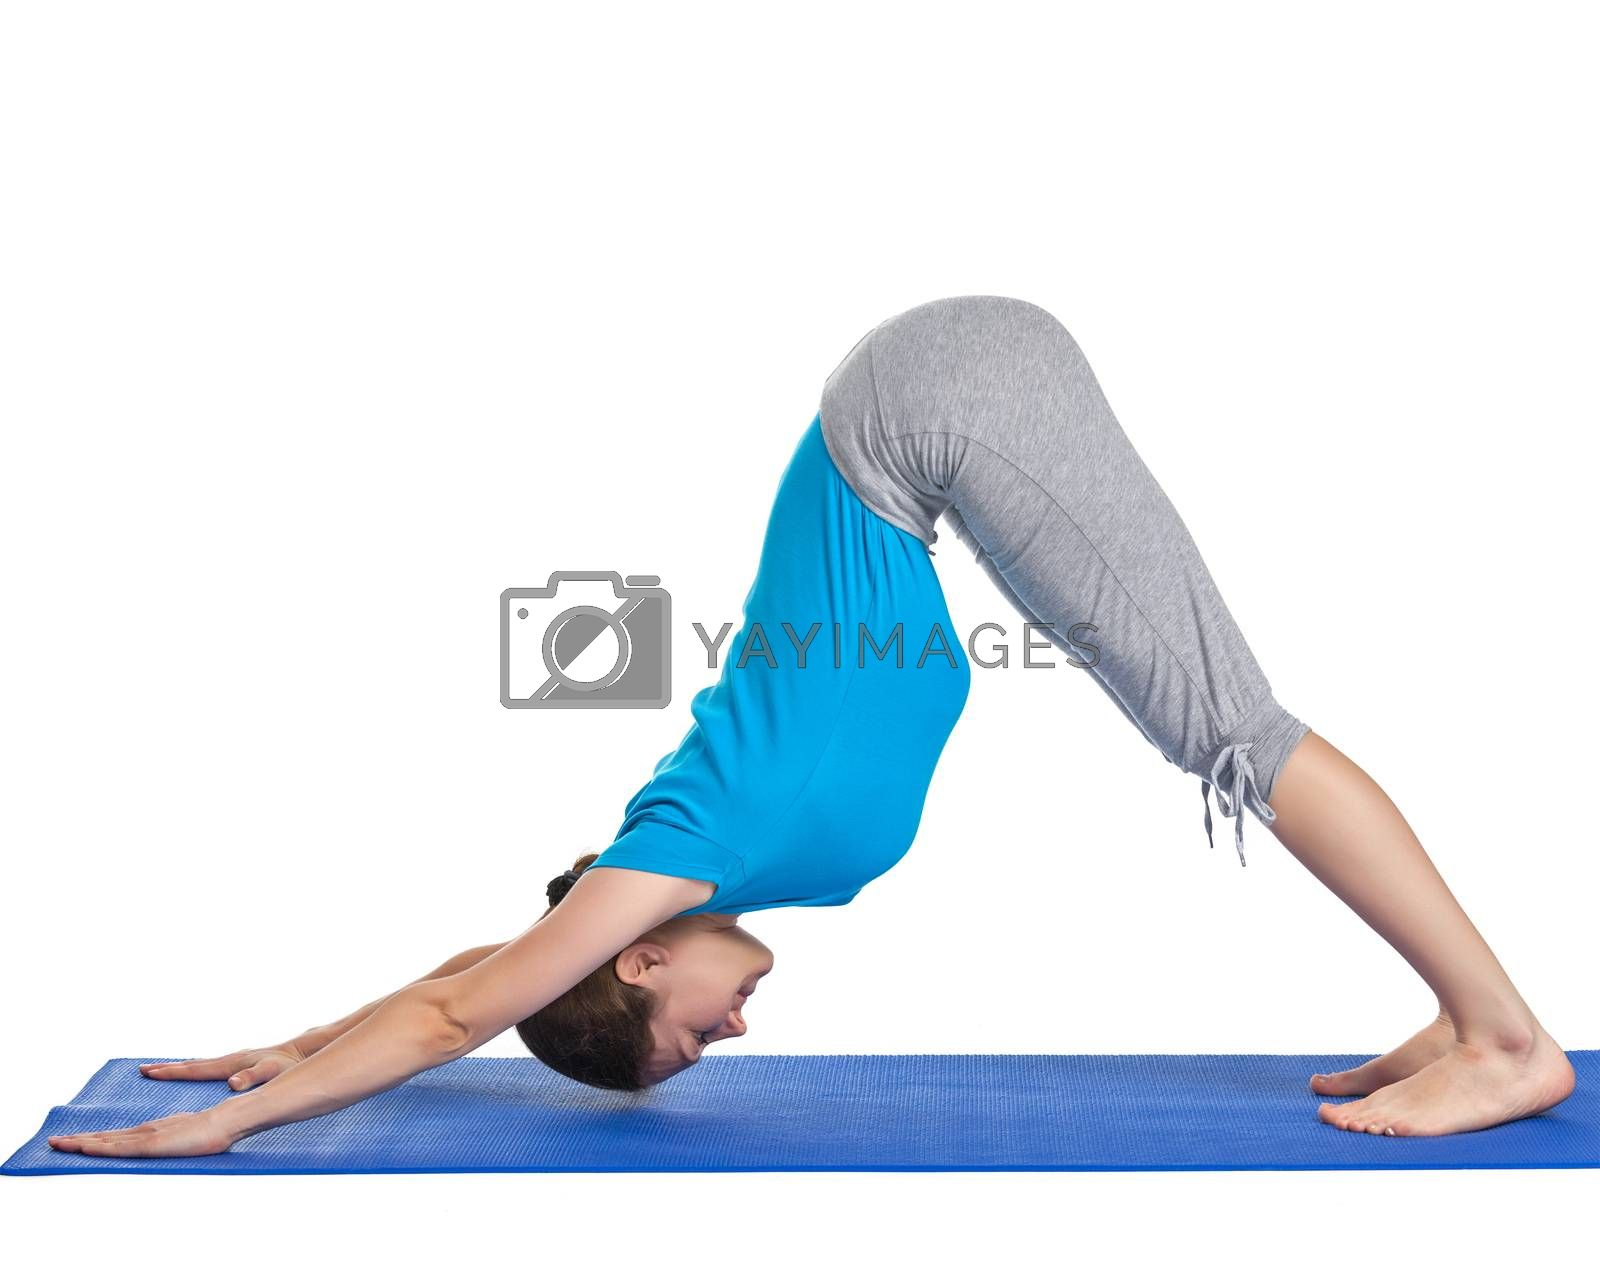 Yoga - young beautiful woman yoga instructor doing downward facing dog pose (adho mukha svanasana) exercise isolated on white background